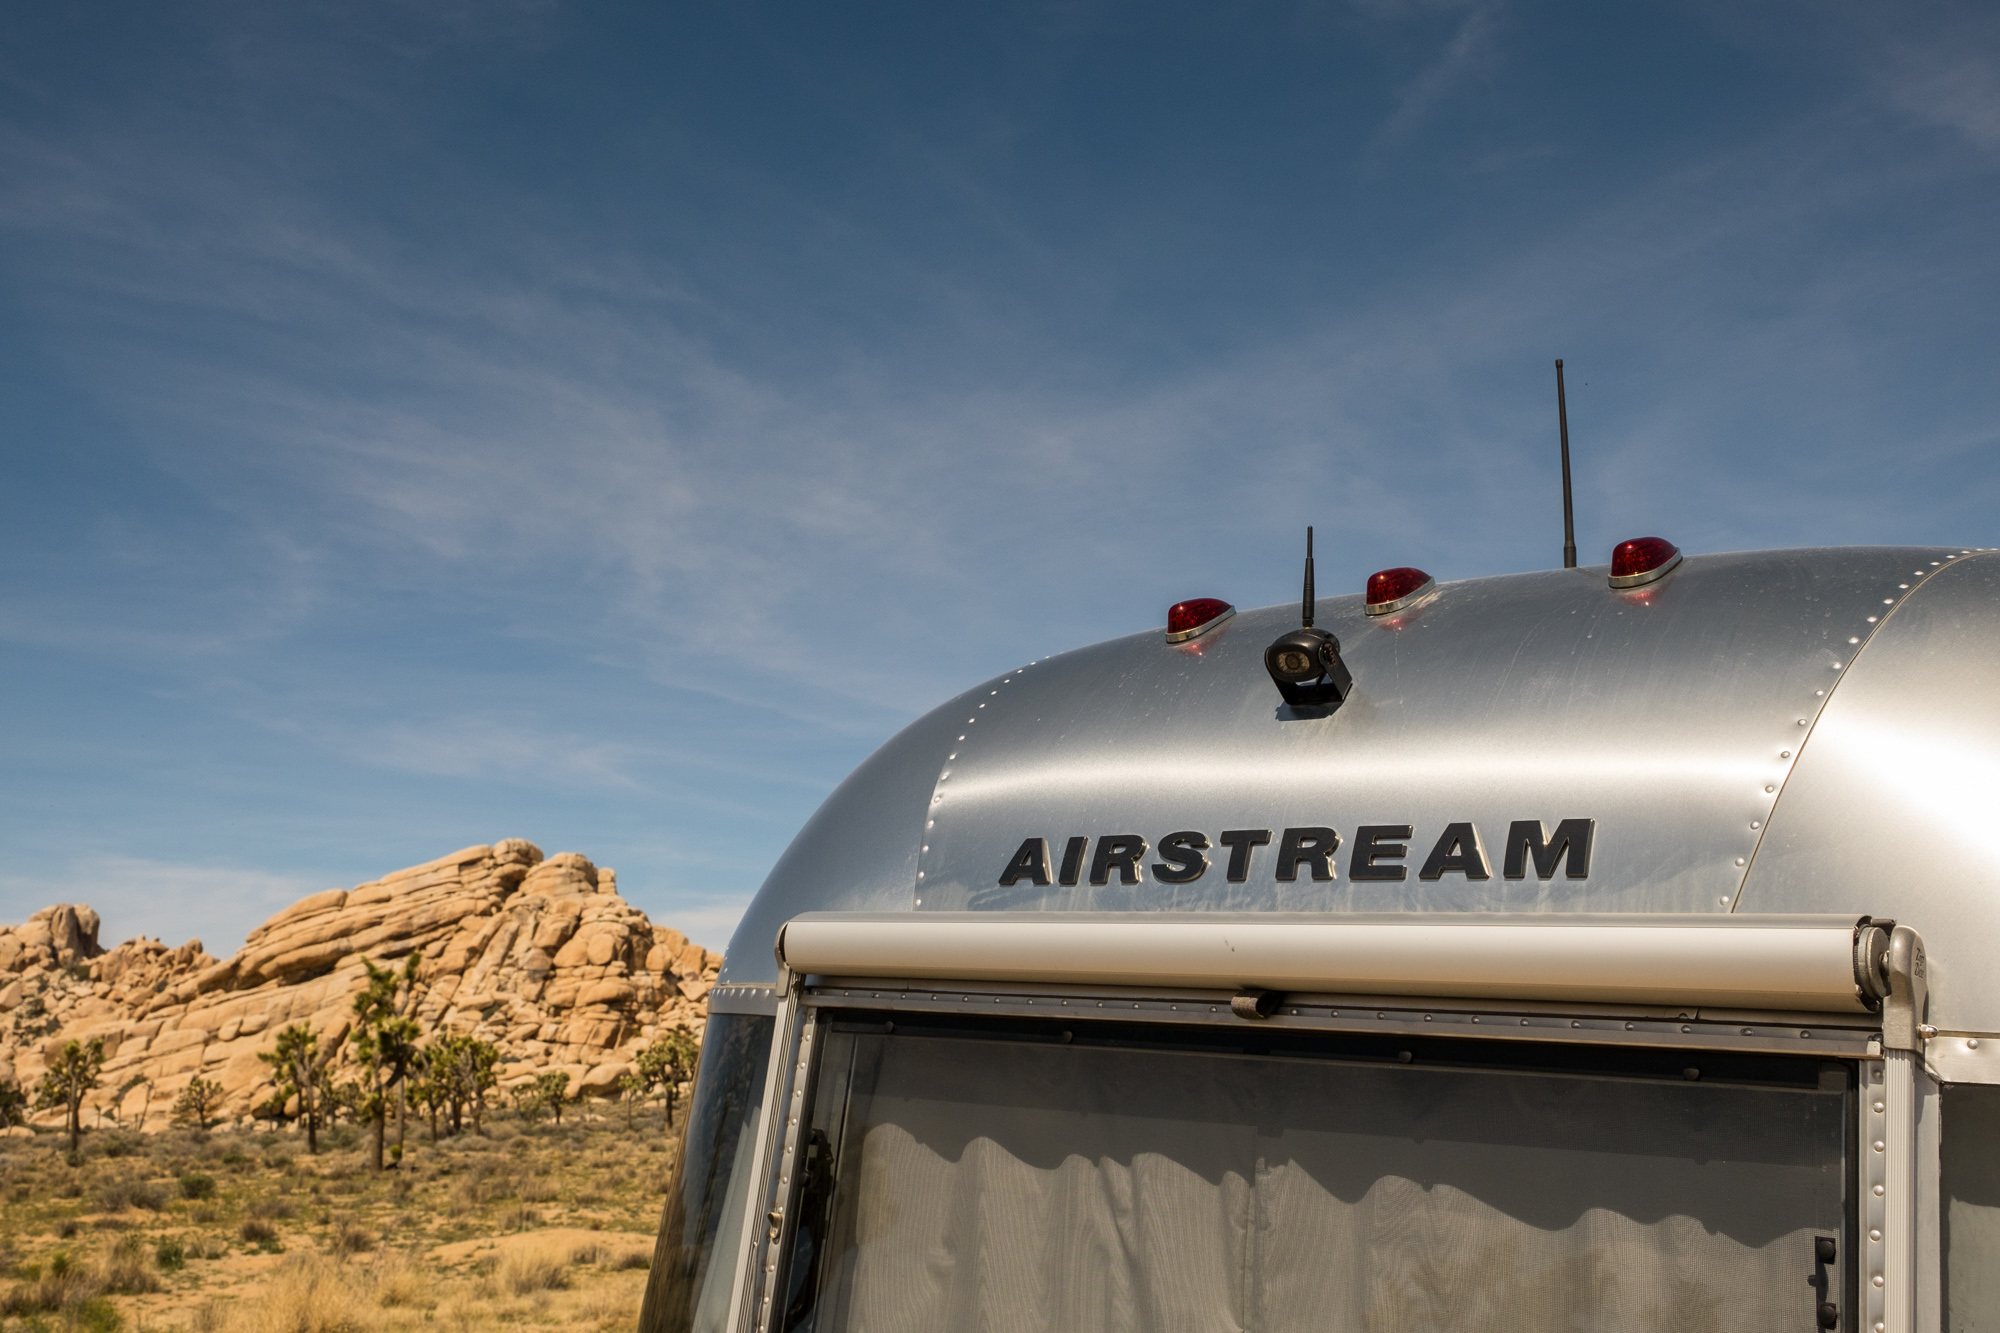 There's no better place to stay in Joshua Tree than in our beloved Airstream, Wally!